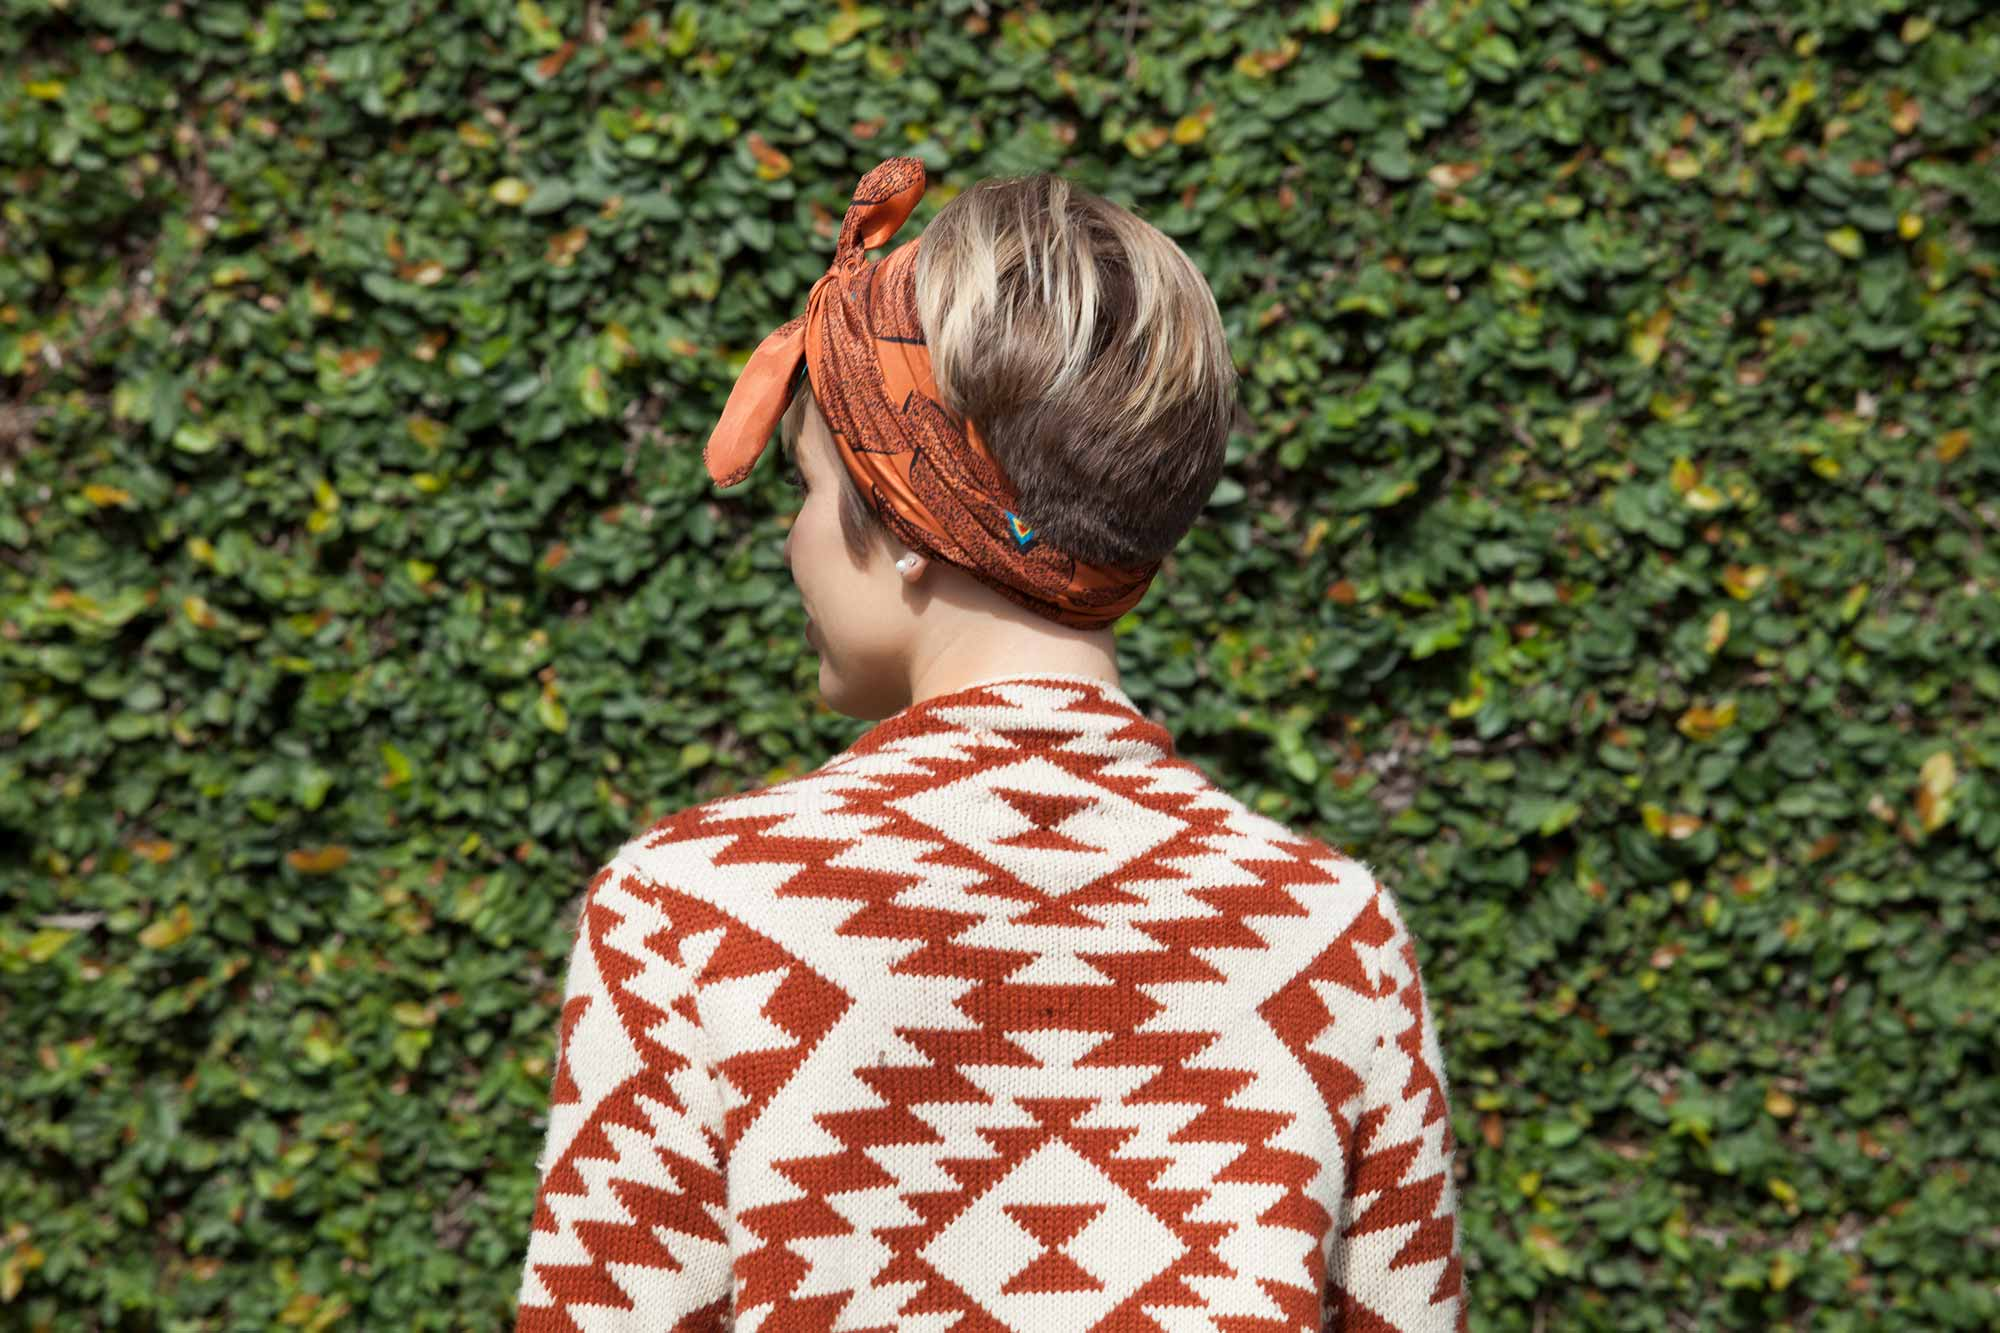 Christmas party hairstyles for short hair: All Things Hair - IMAGE - bandana hair accessory pixie crop